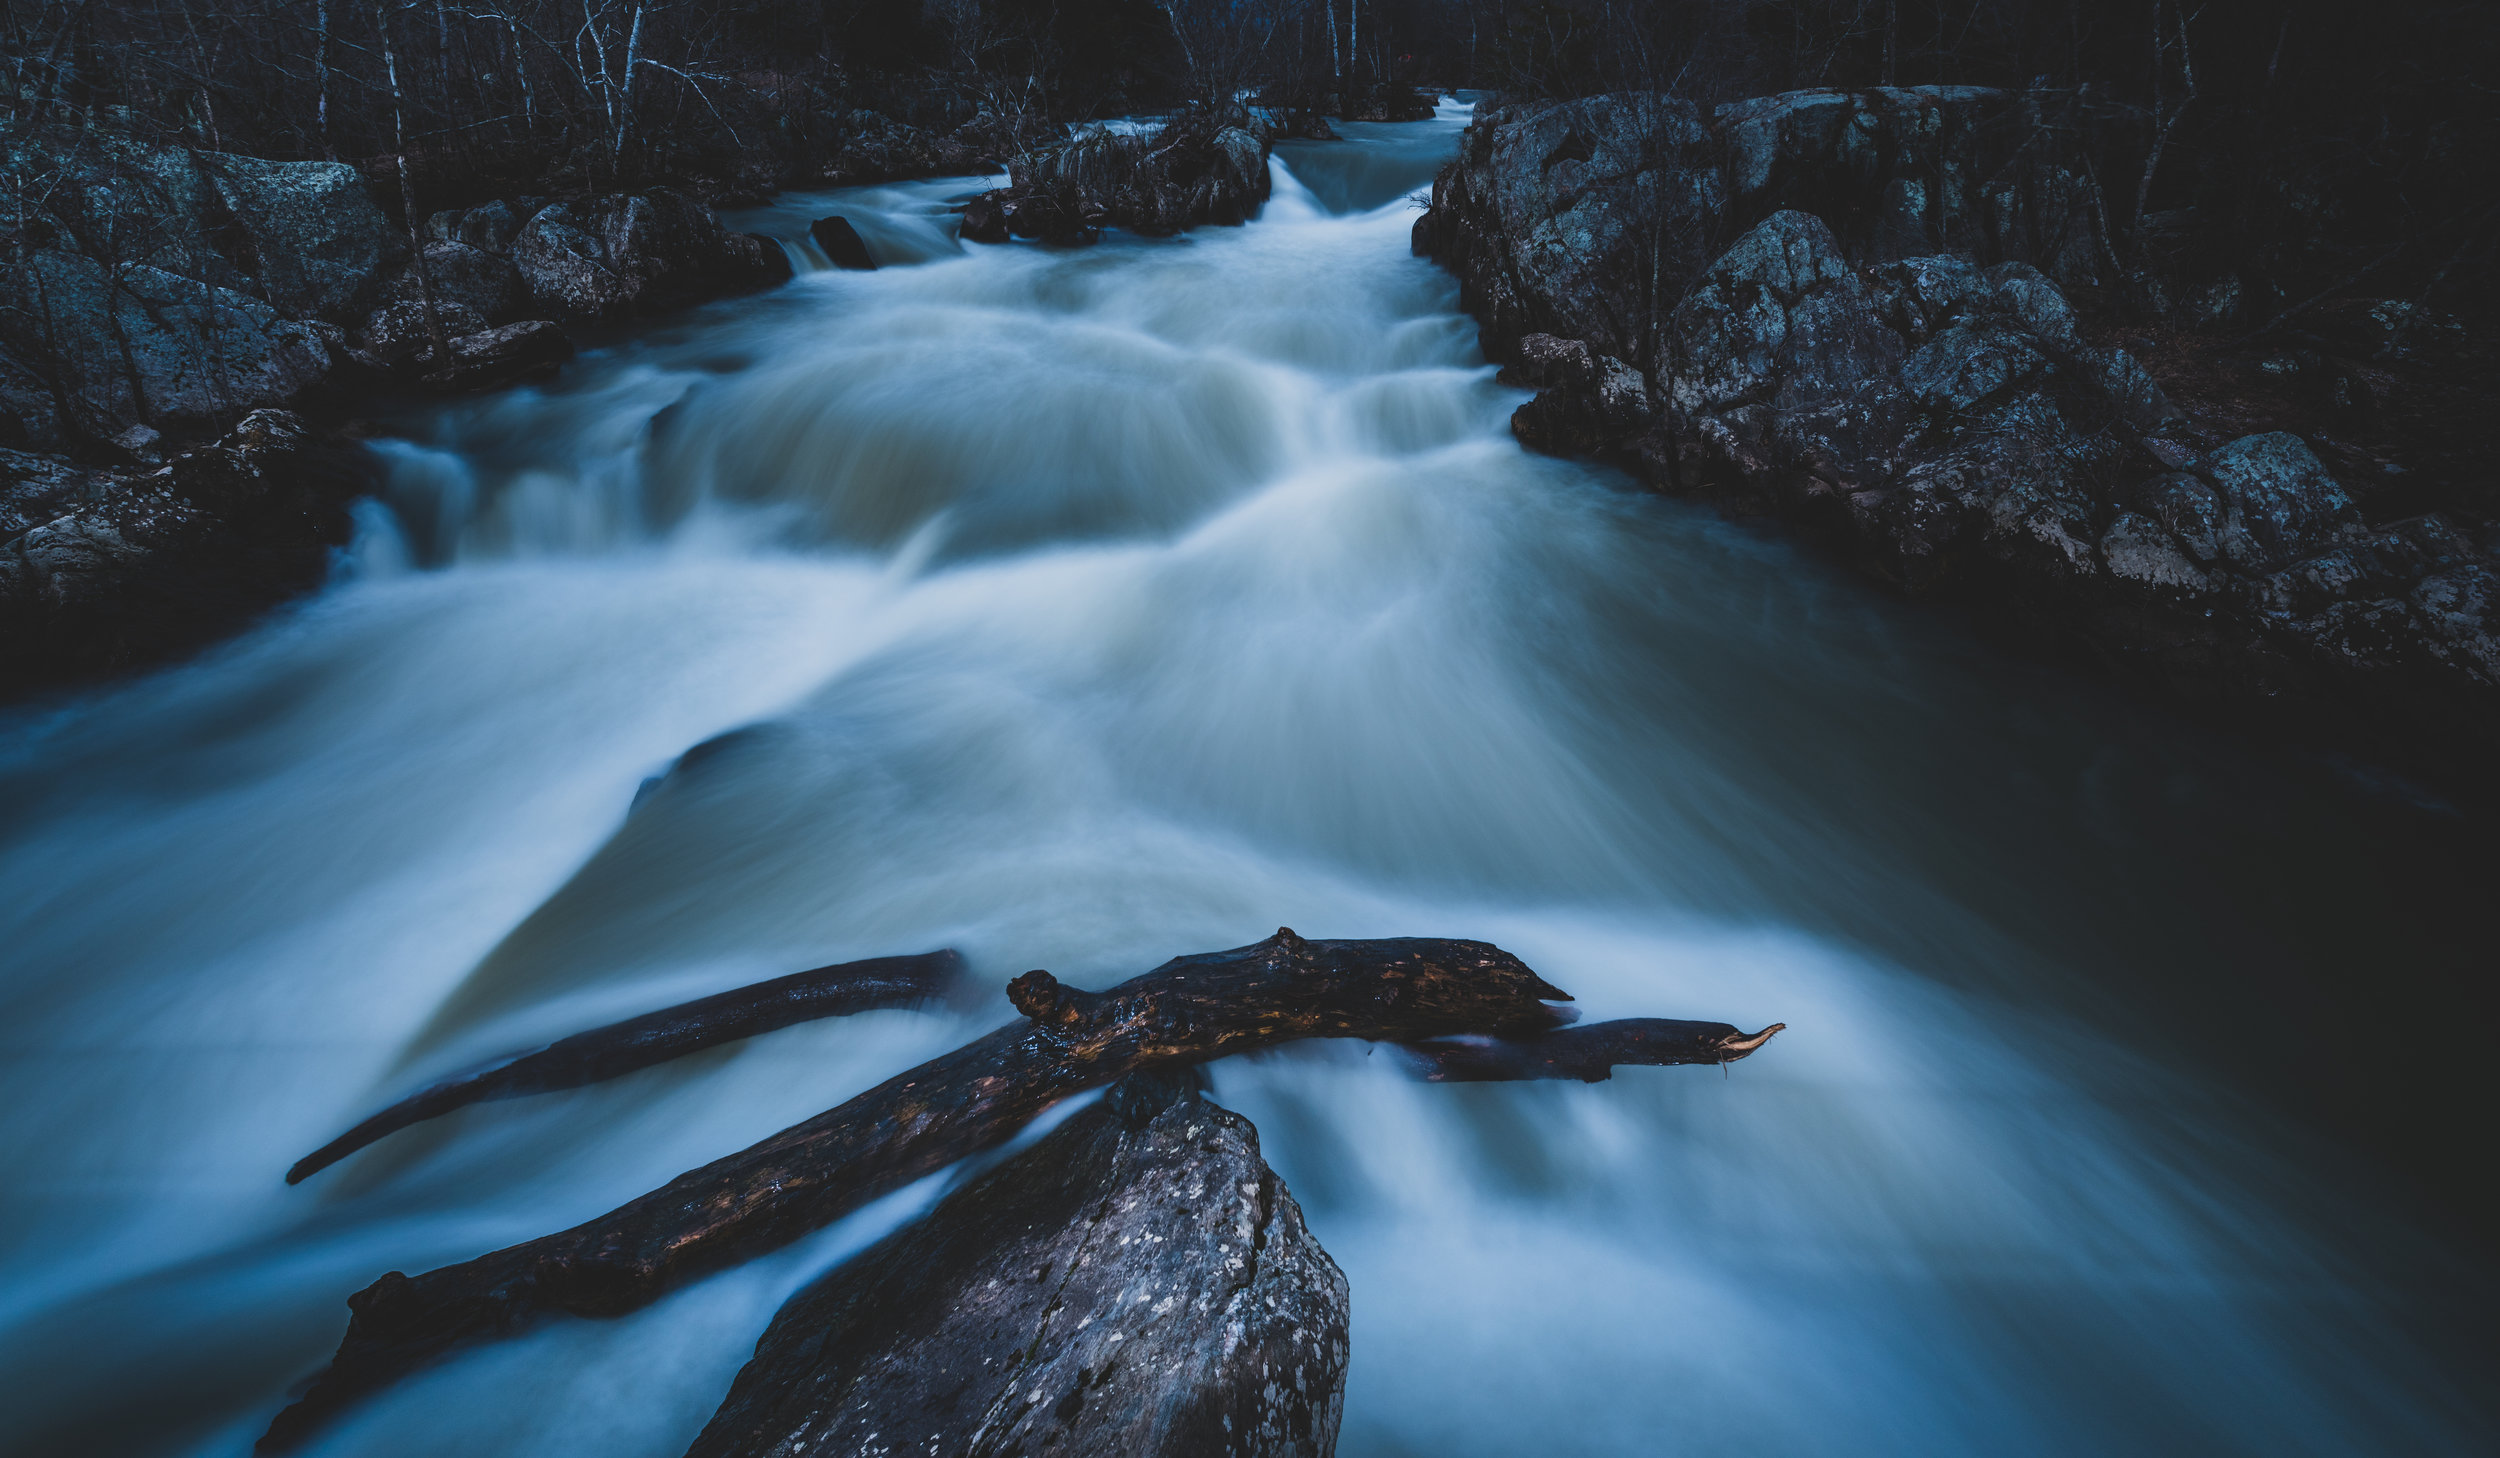 Long Exposure Effect on Water Falls (click the image to view full size)